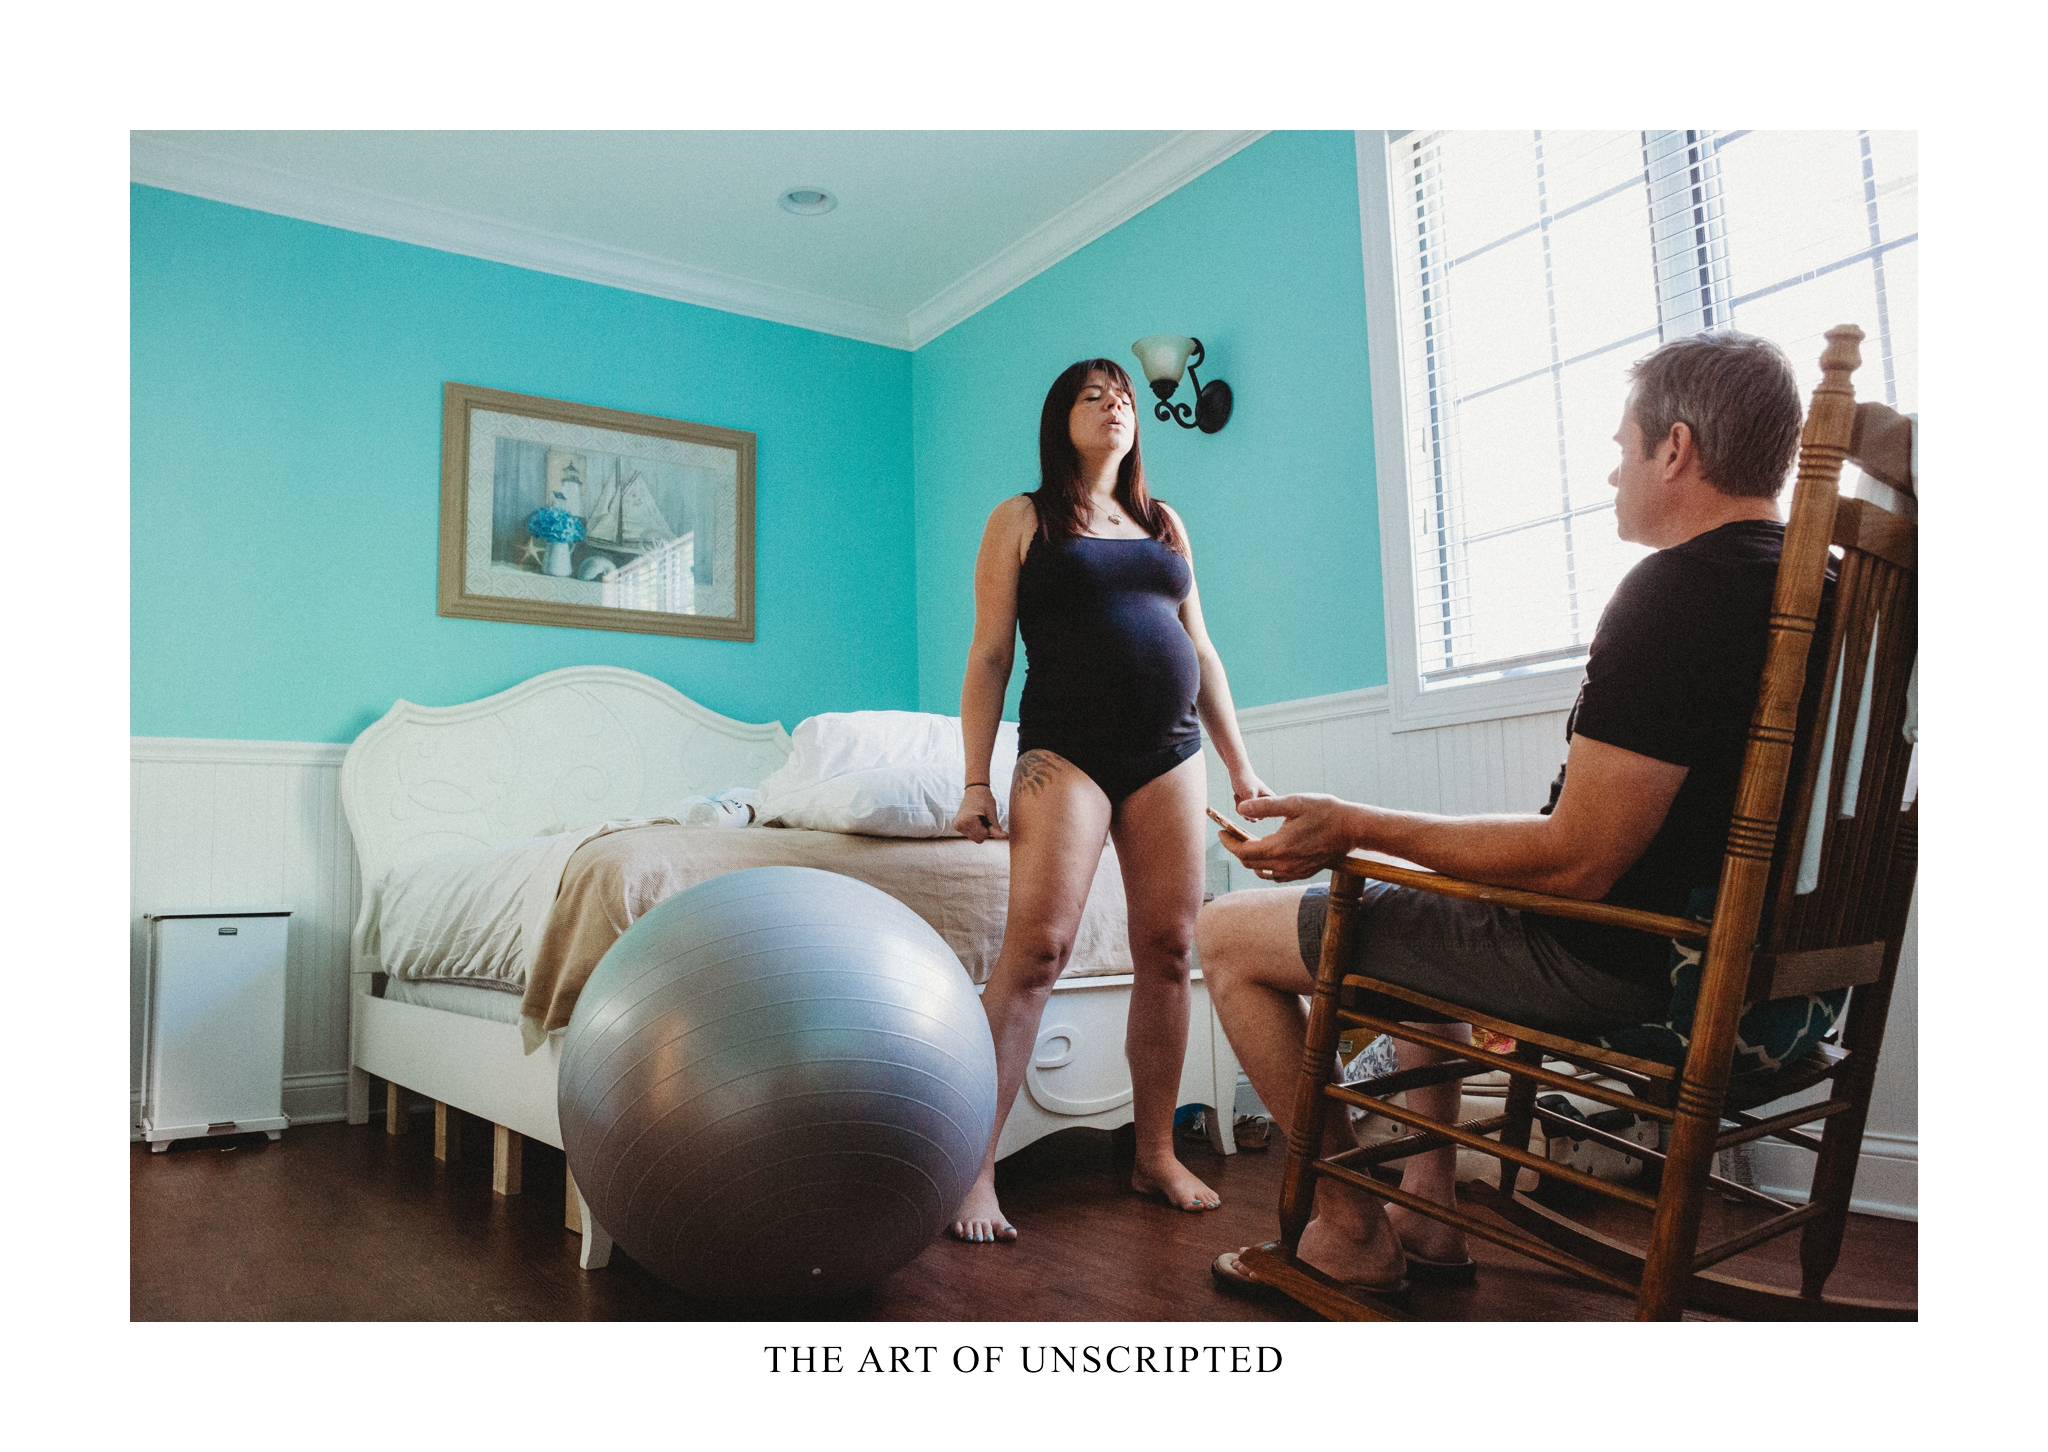 2017-06-10_073843__THE ART OF UNSCRIPTED_SPRINGFIELD MO_BIRTH PHOTOGRAPHER_ DOCUMENTARY_STORYTELLING_417_PHOTOGRAPHER